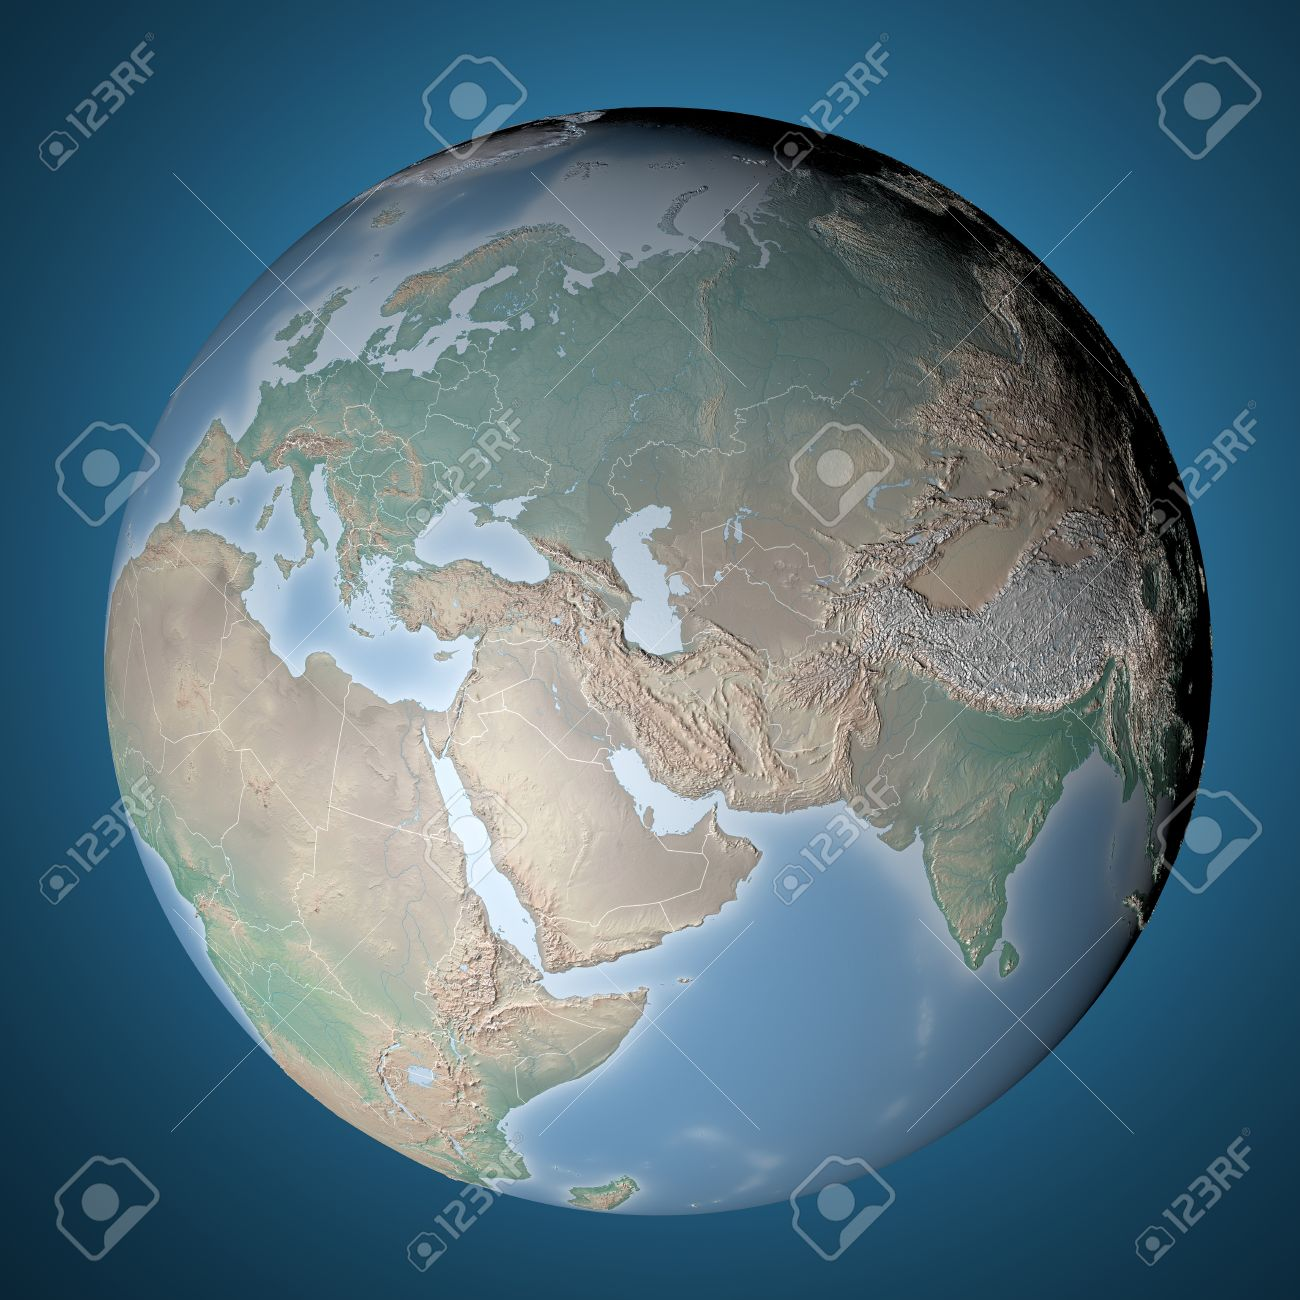 World Map, Physical Map, Middle East, North Africa, Europe And